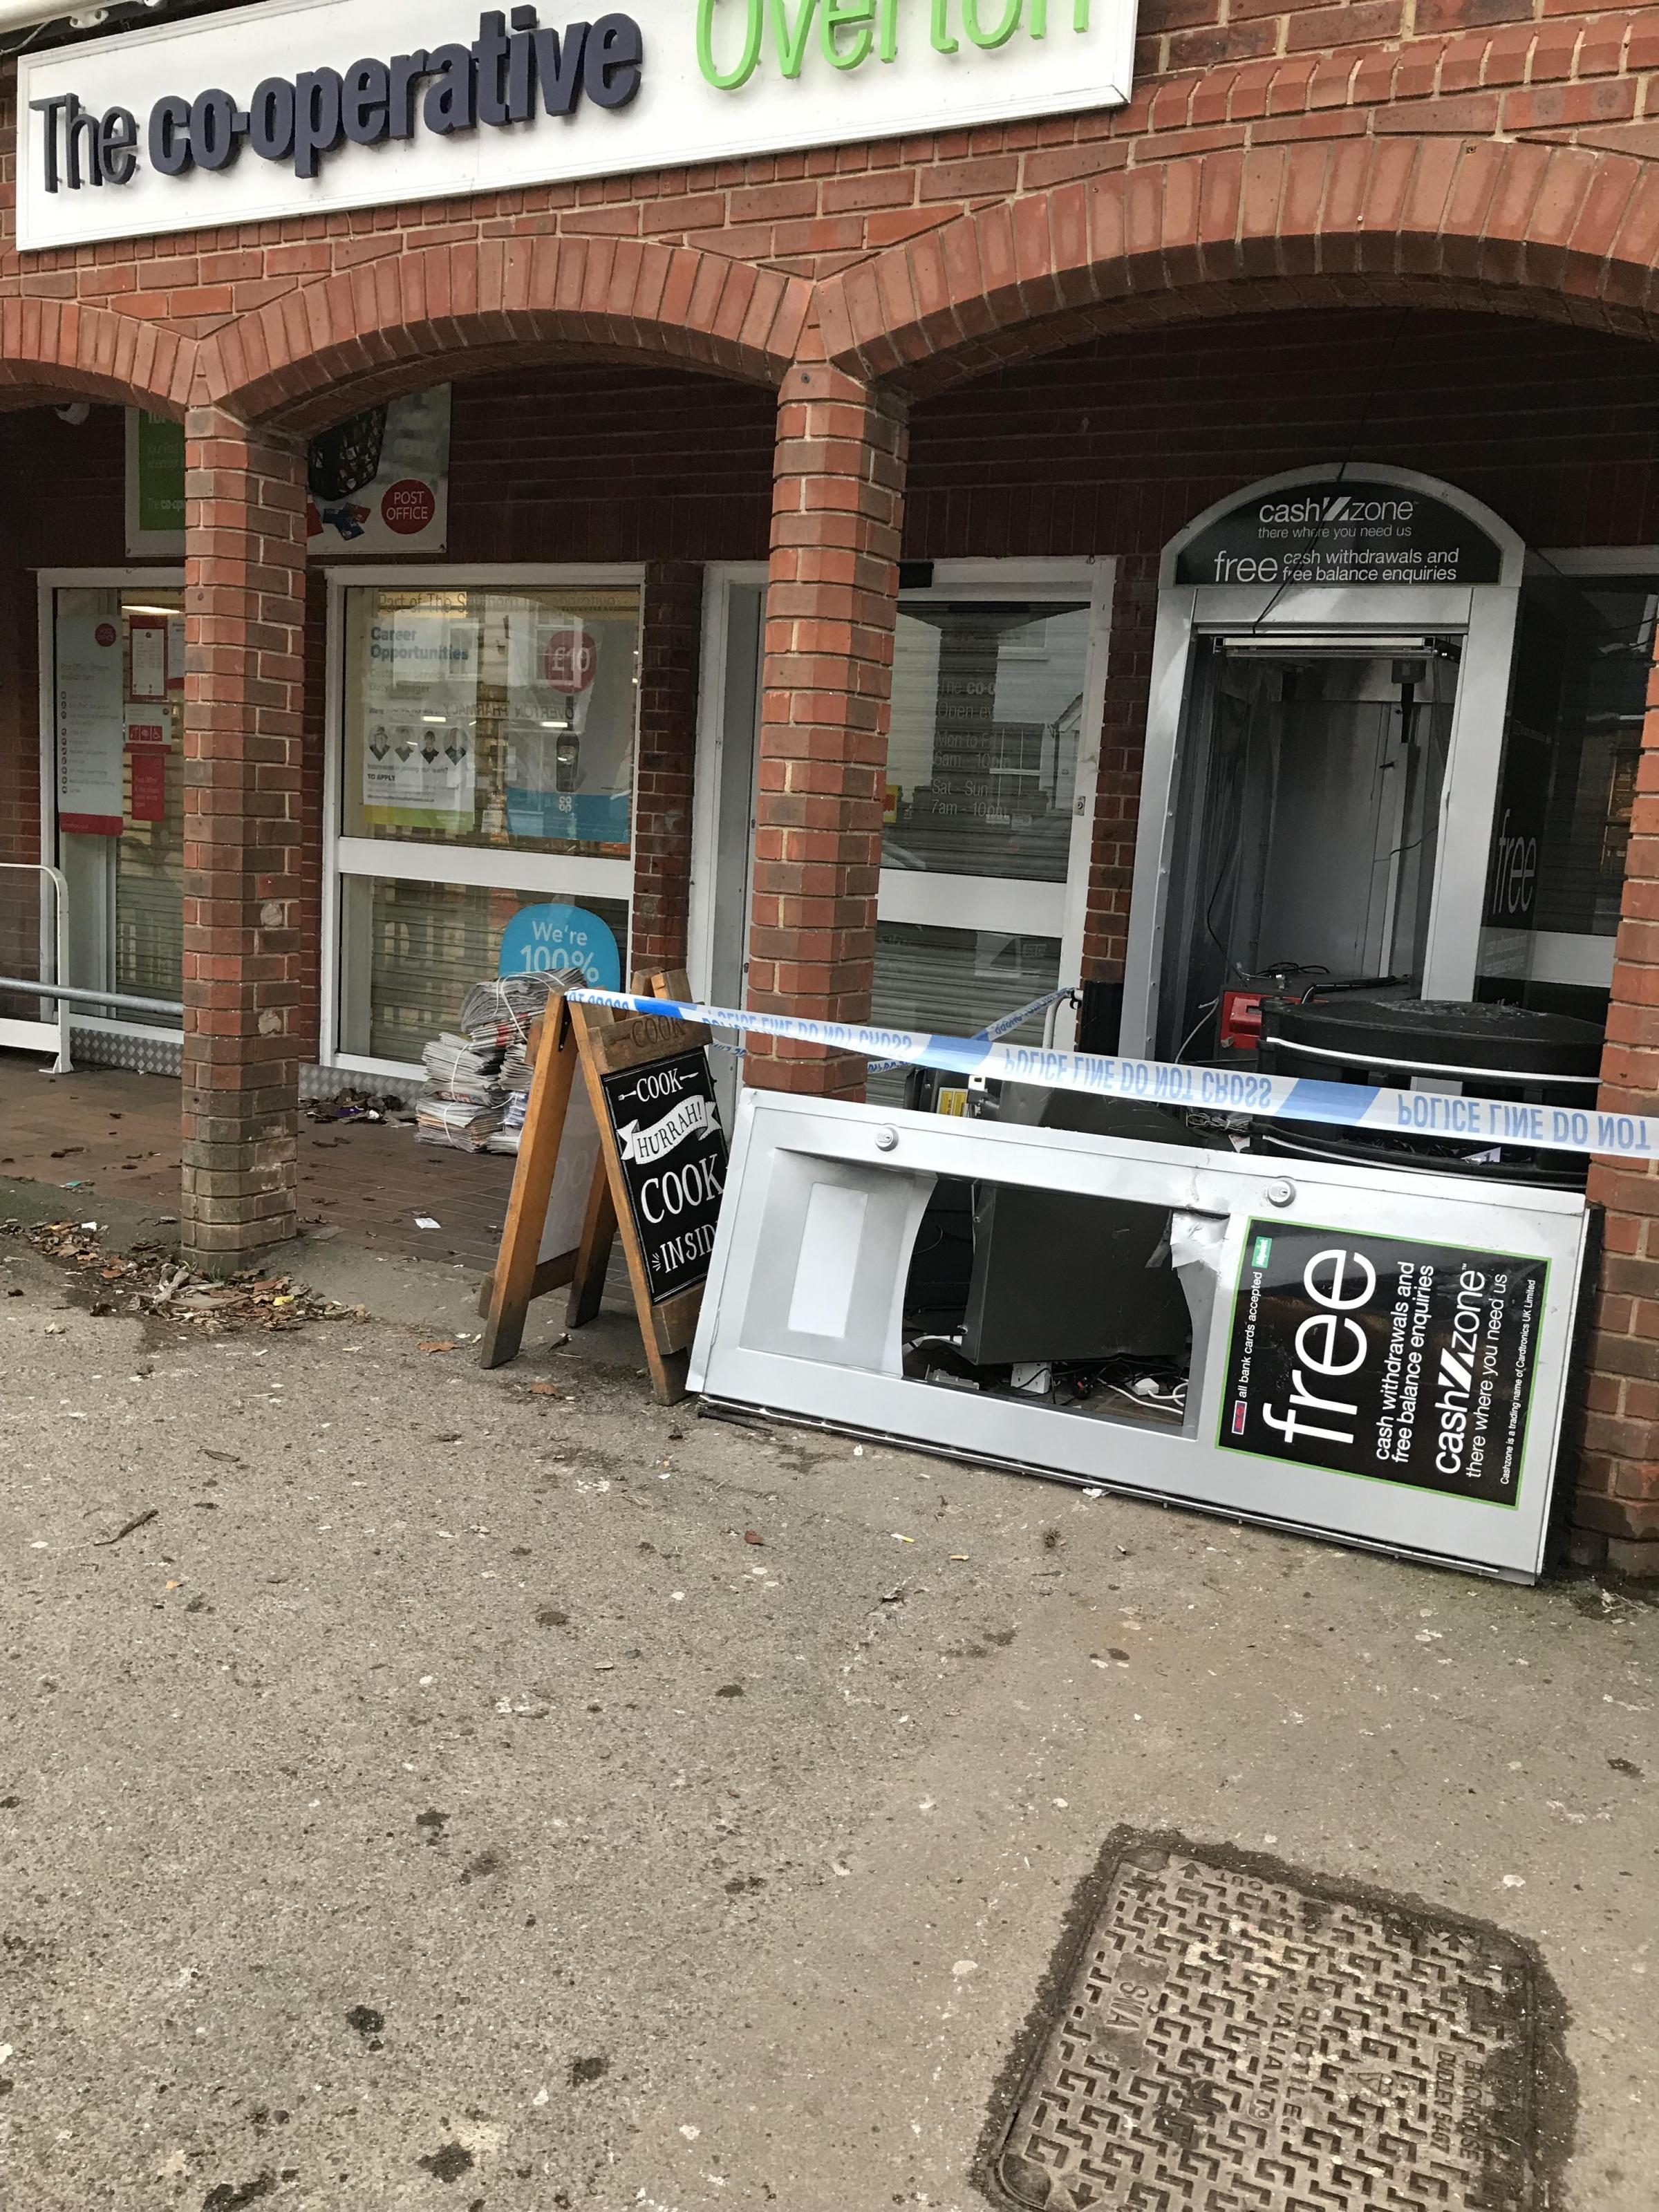 The damaged cashpoint. Photo: @Overtonhants on Twitter